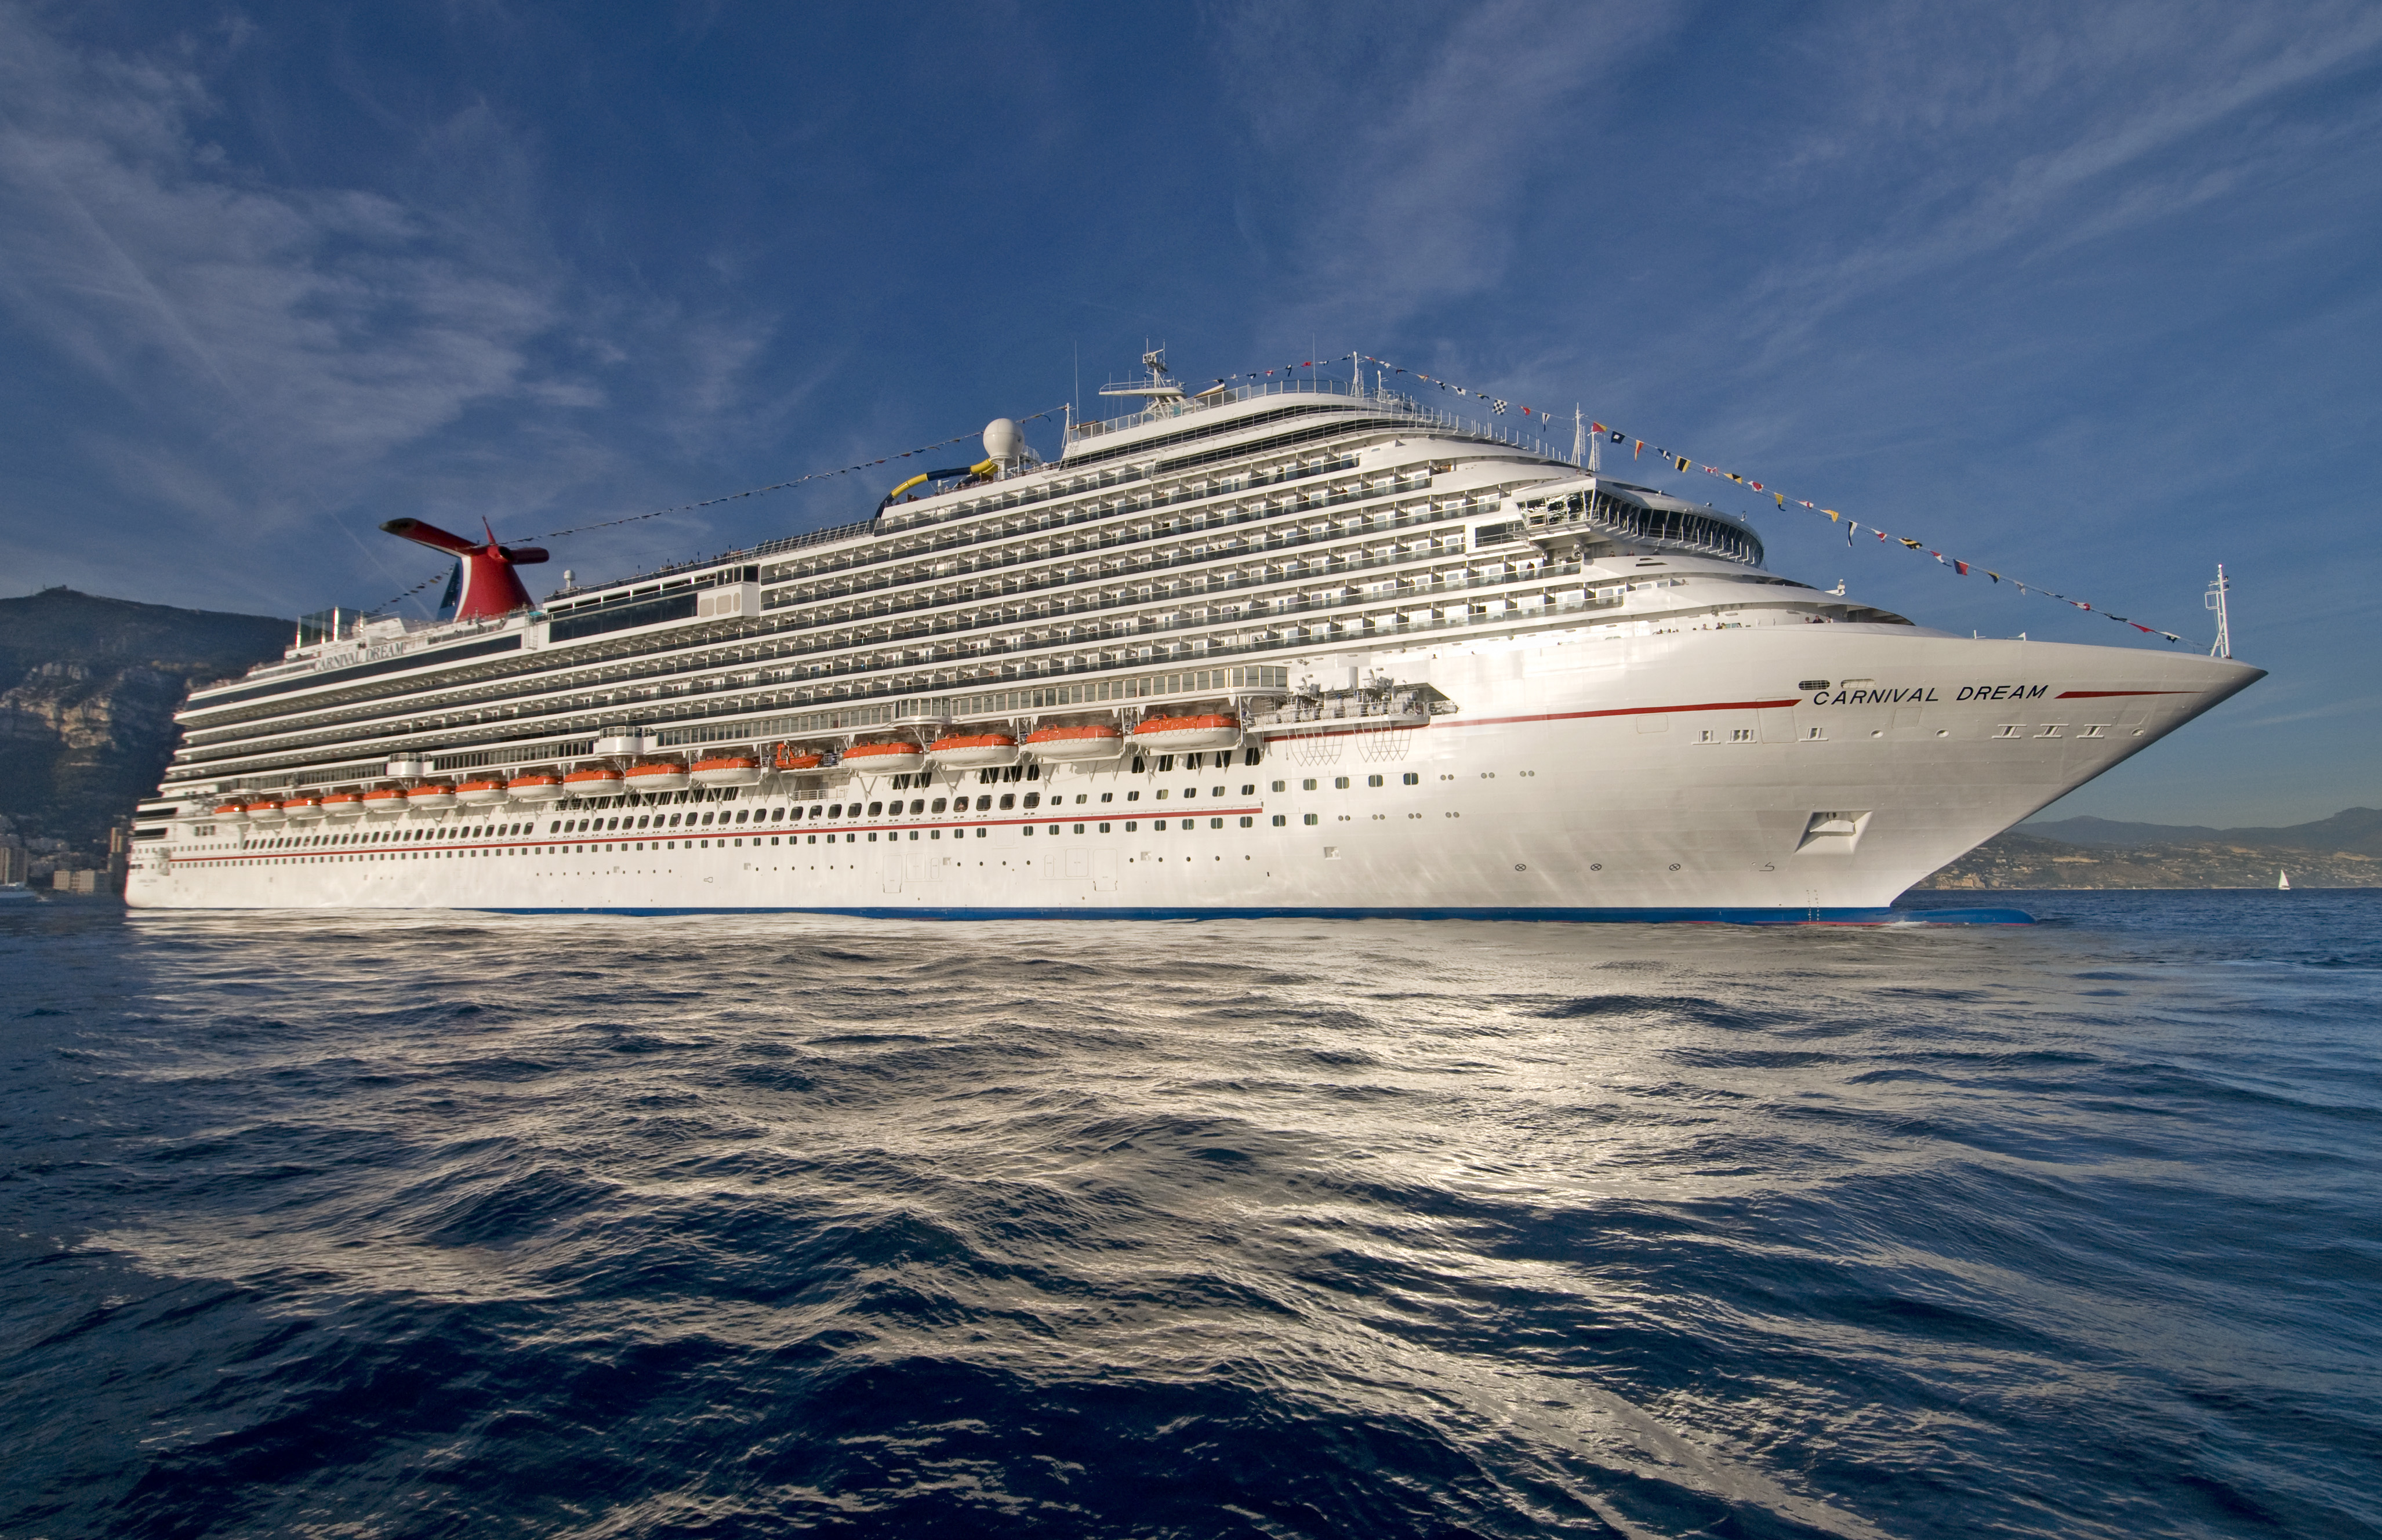 Carnival Dream at sea